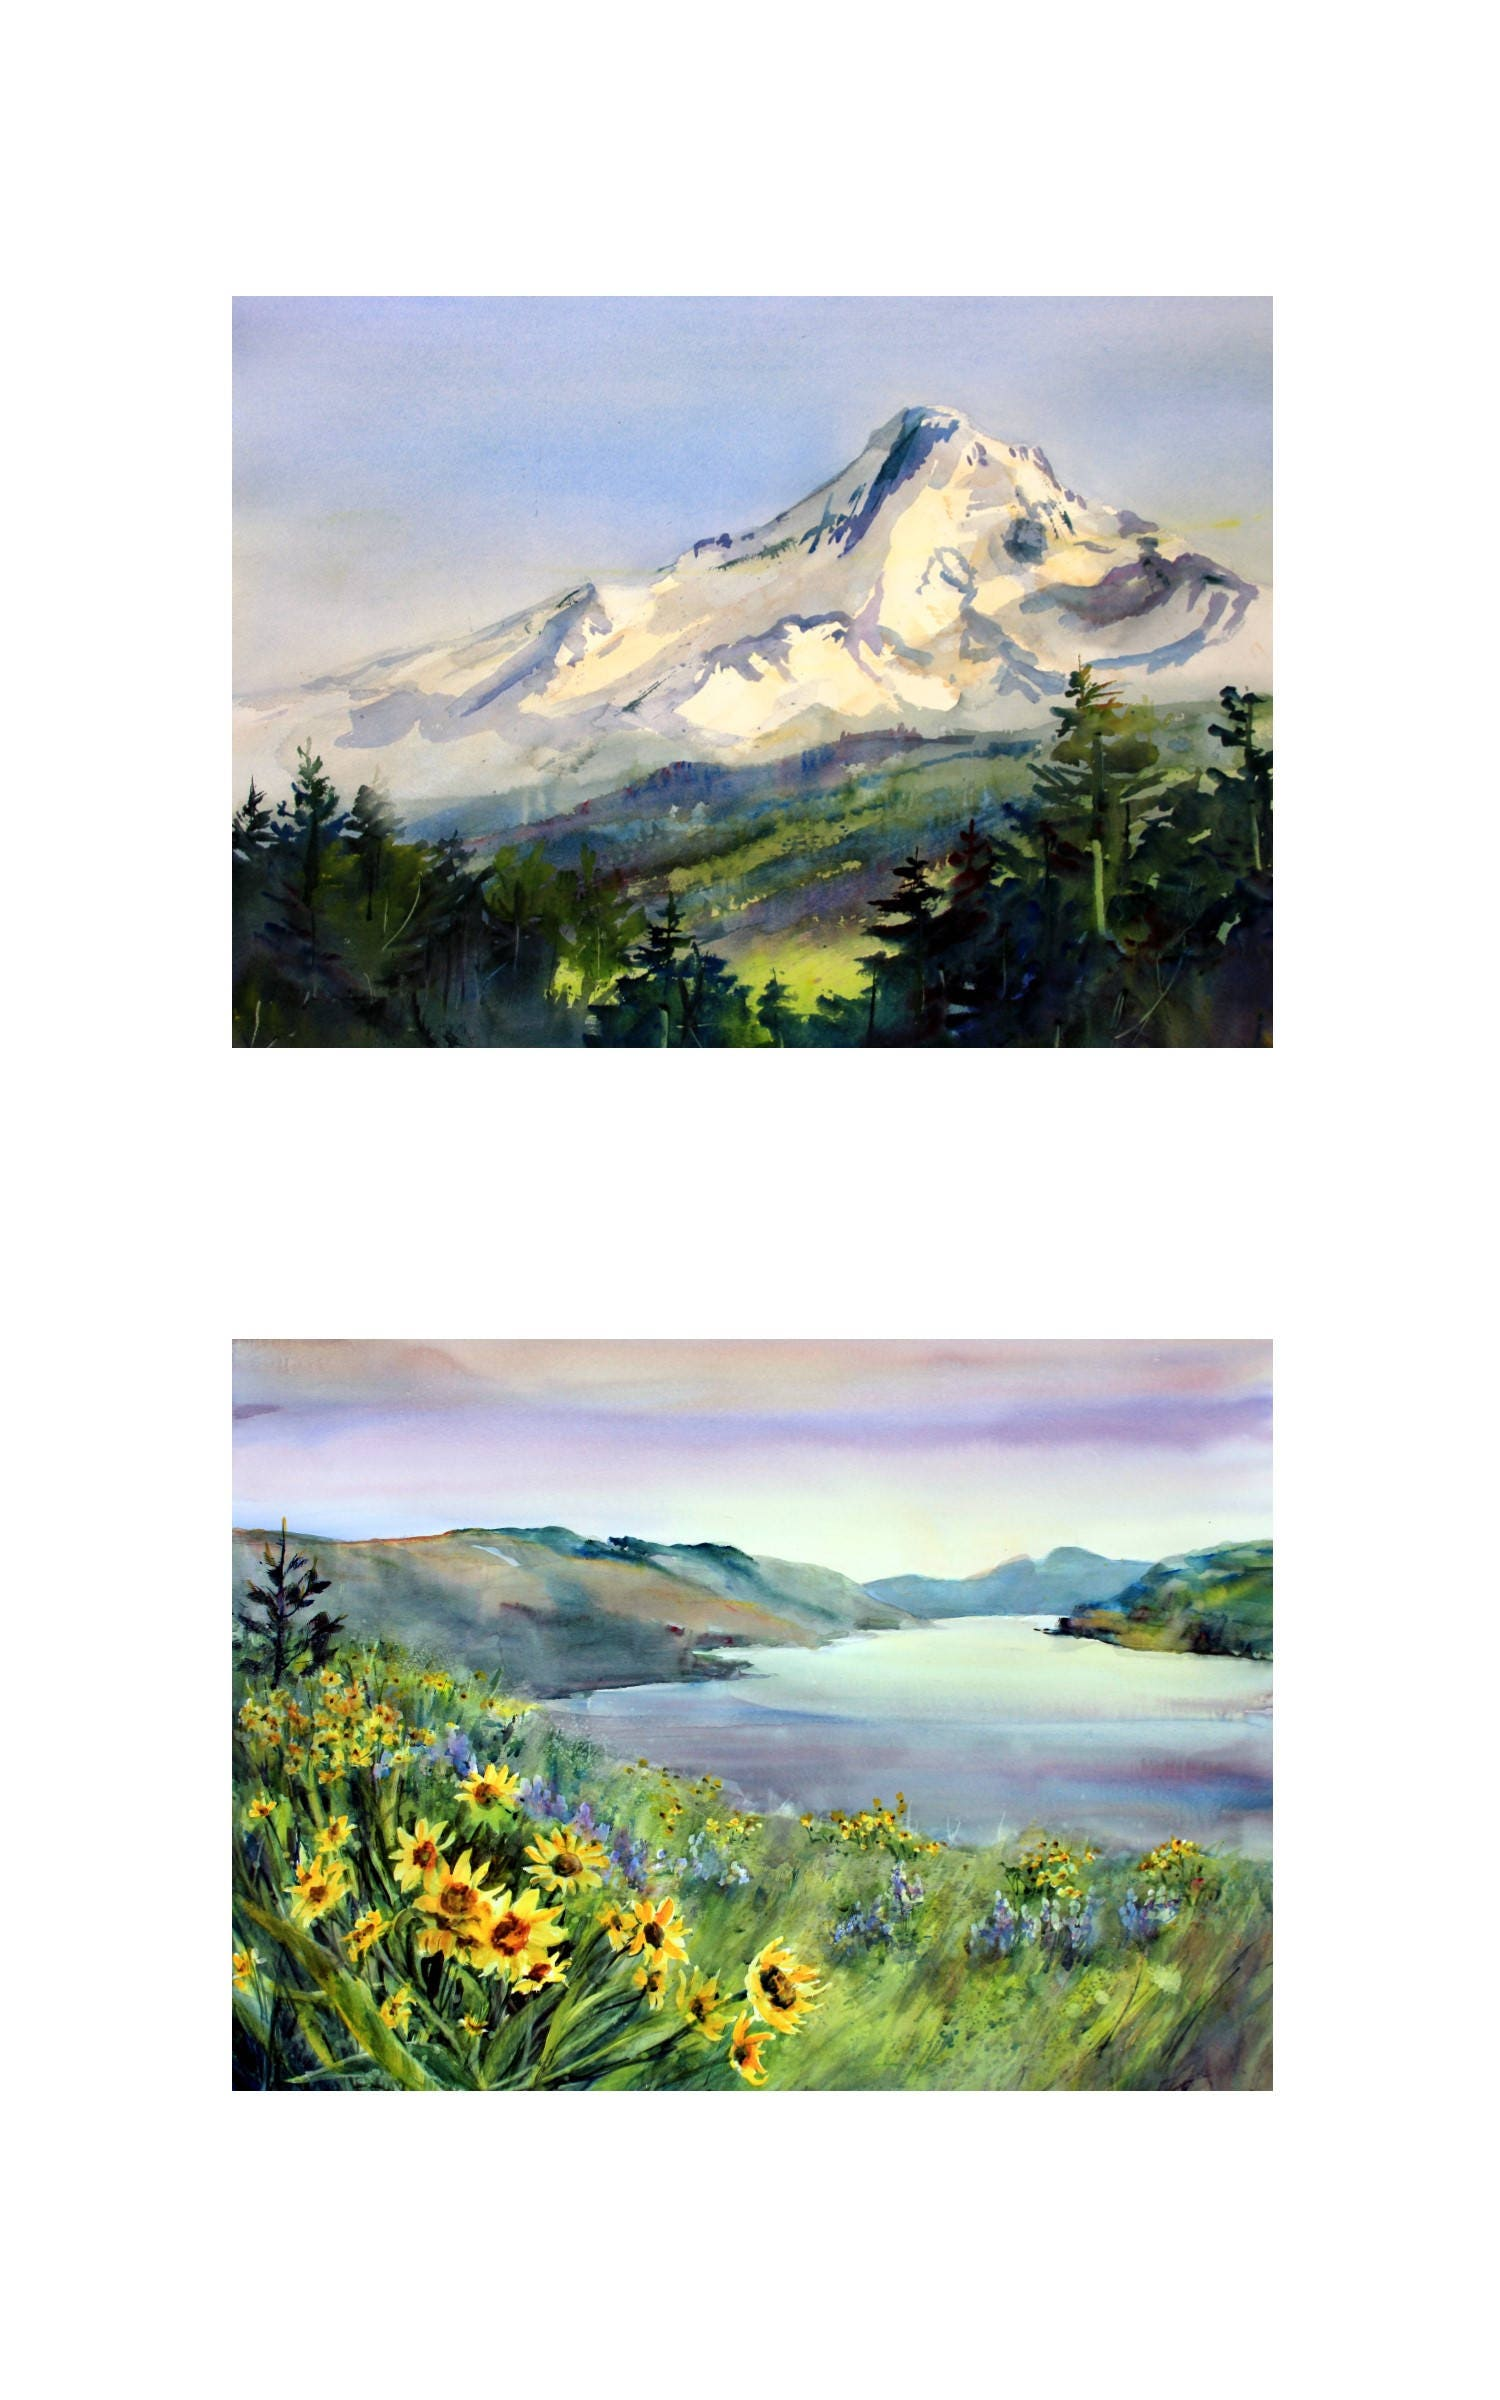 10x16 - 2 matted and or framed watercolor prints of Mt. Hood and the ...